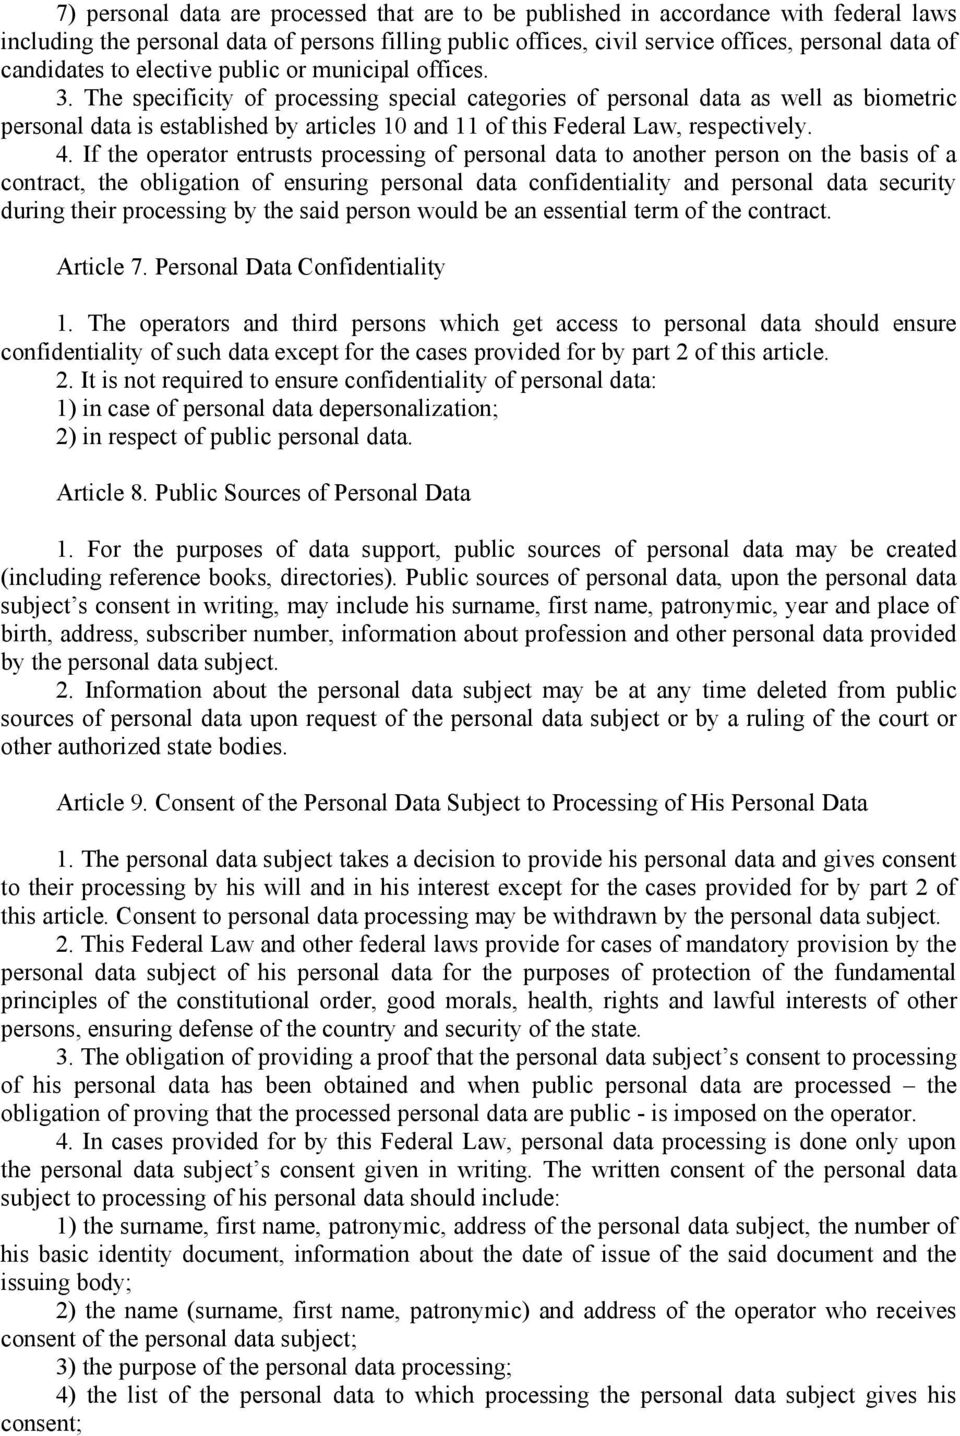 The specificity of processing special categories of personal data as well as biometric personal data is established by articles 10 and 11 of this Federal Law, respectively. 4.